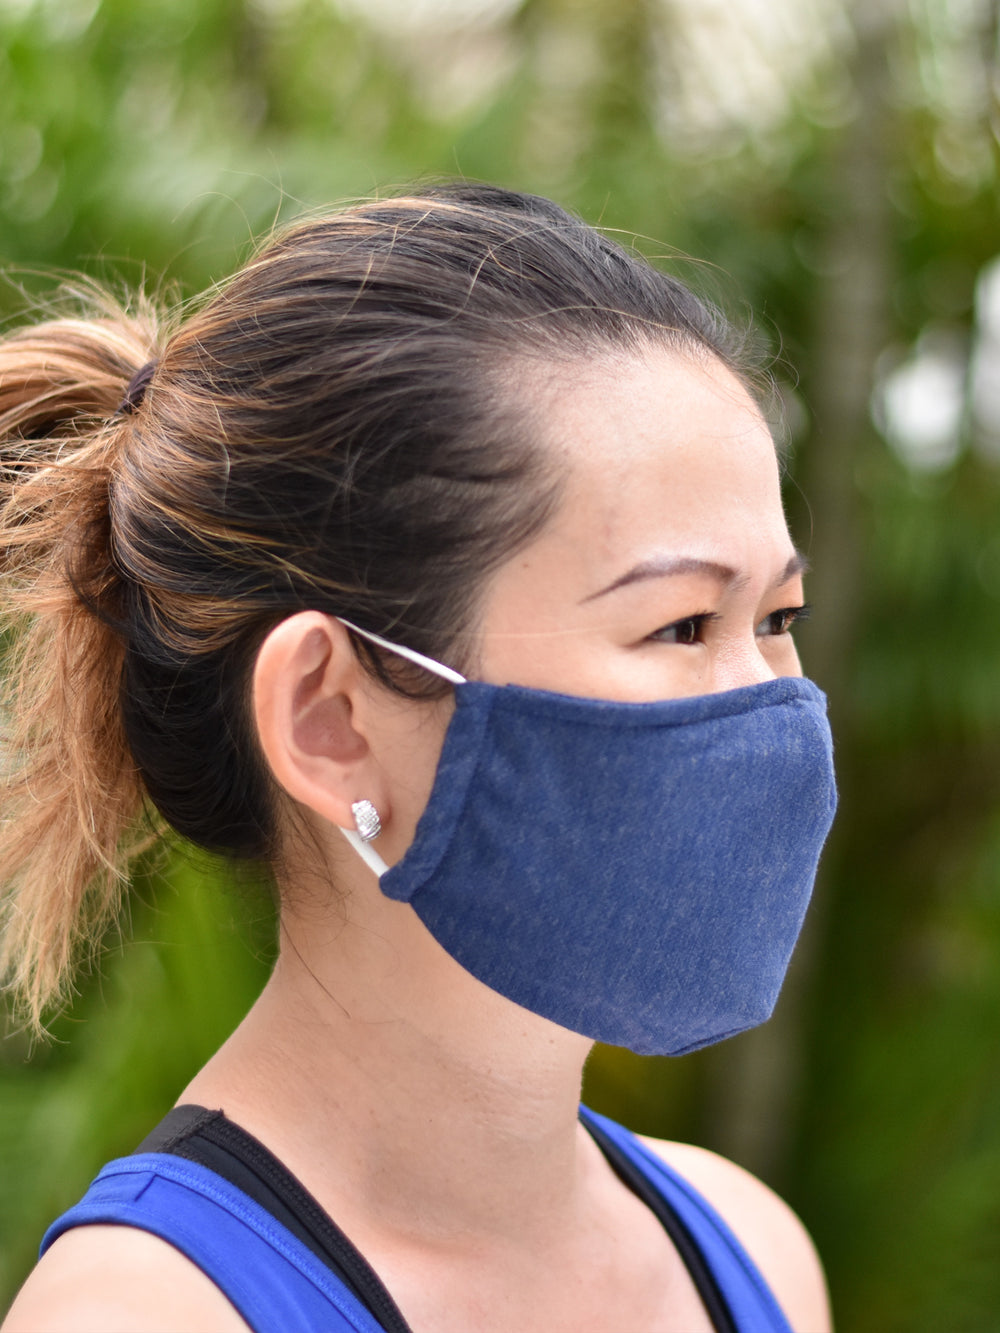 Reusable Face Mask (with inserts for filter) - A pack of 2 pcs